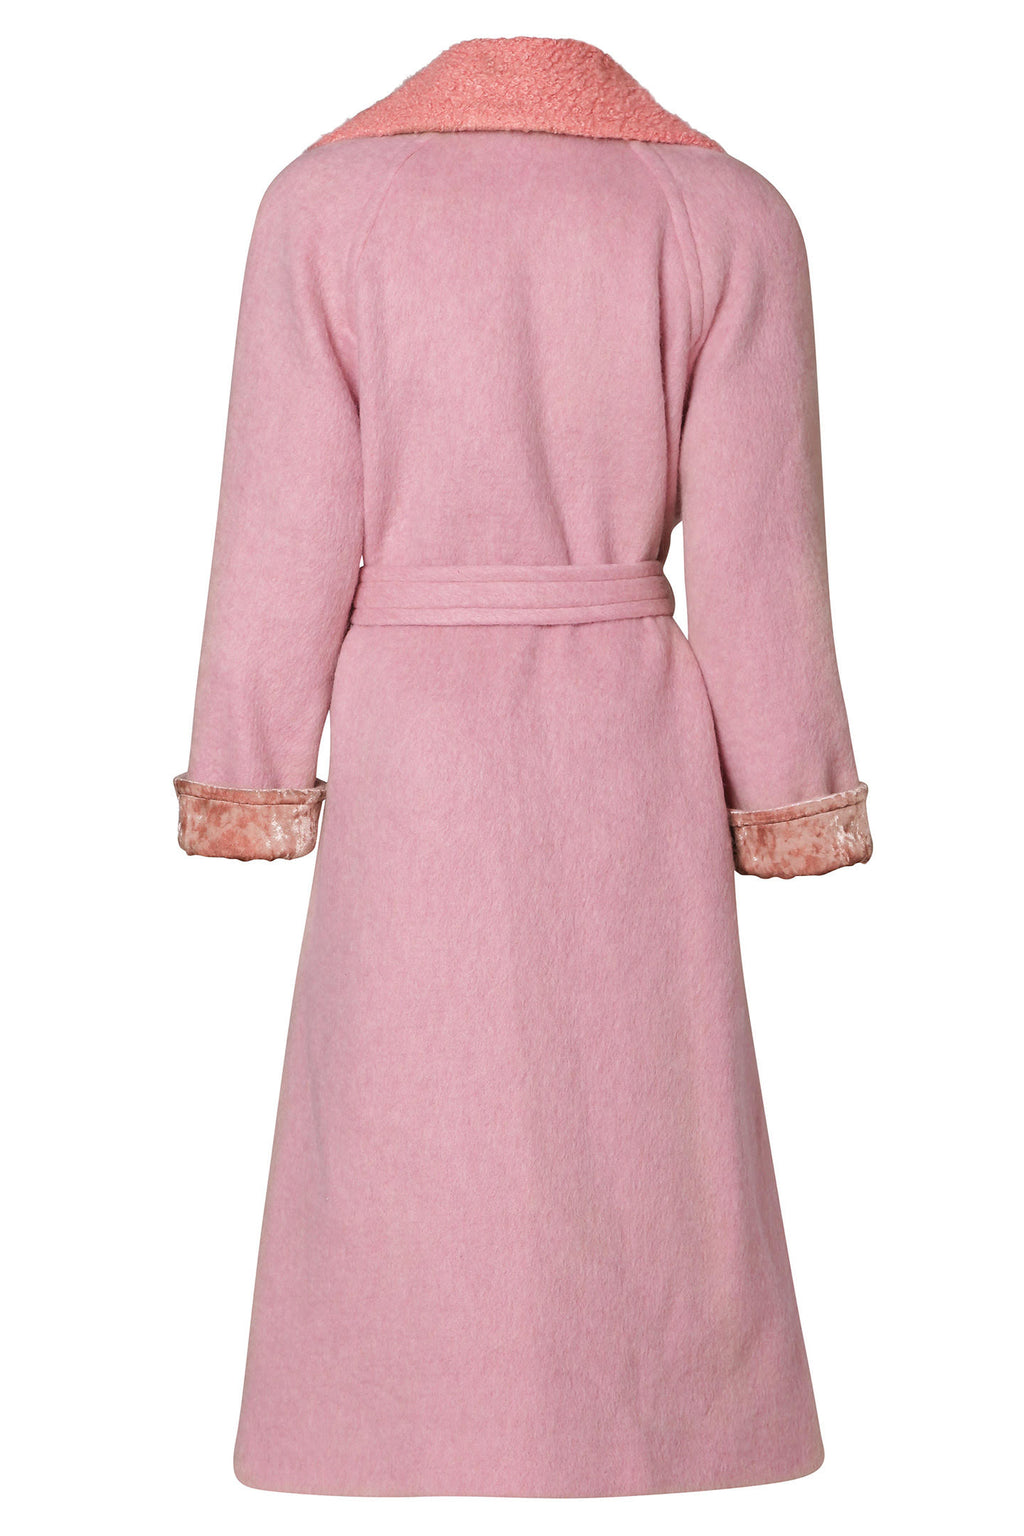 Custom Made Coat: Cotton Candy Pink